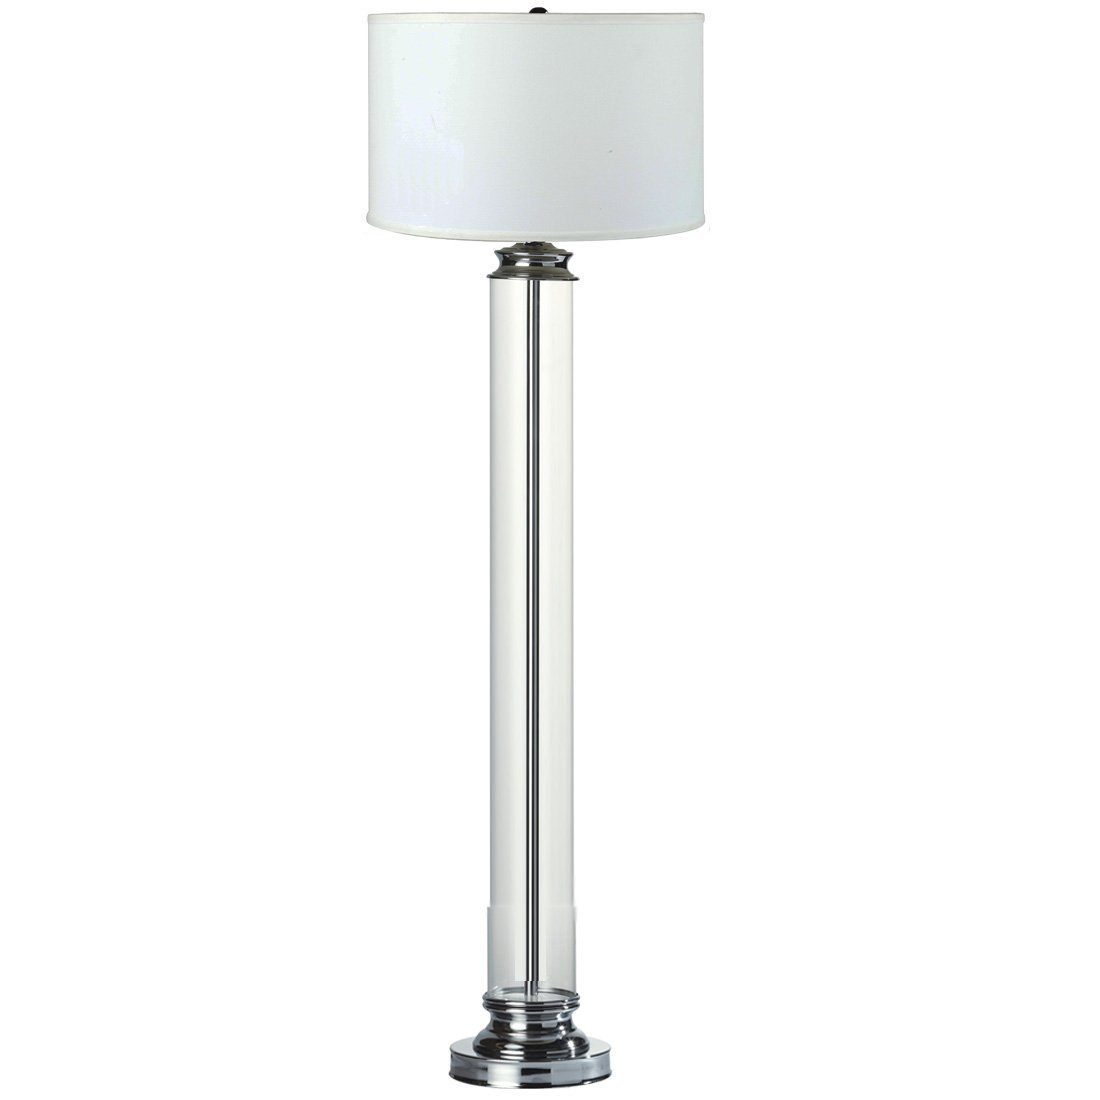 "Major-Q 31183F Classy 63"" Glass Cylinder Body with Chrome Base White Fabric Shade Floor Lamp"